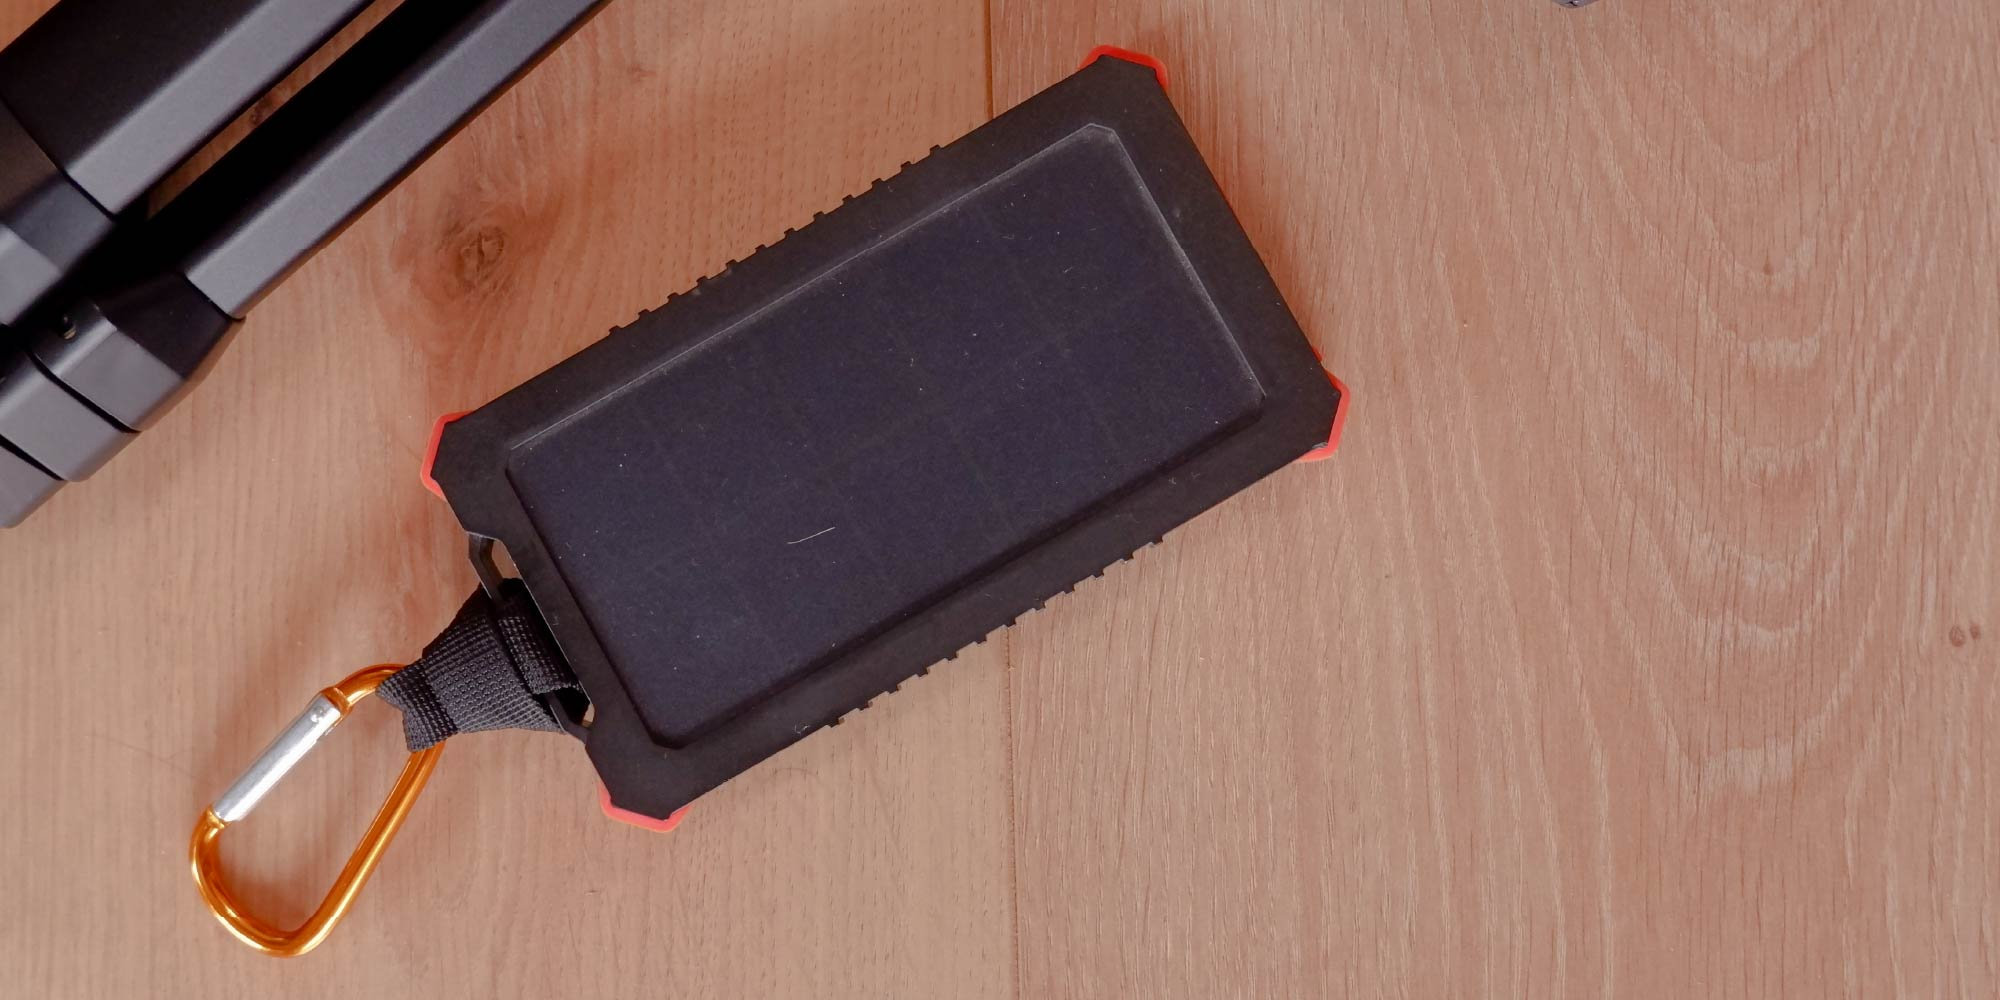 Xtorm solar charger